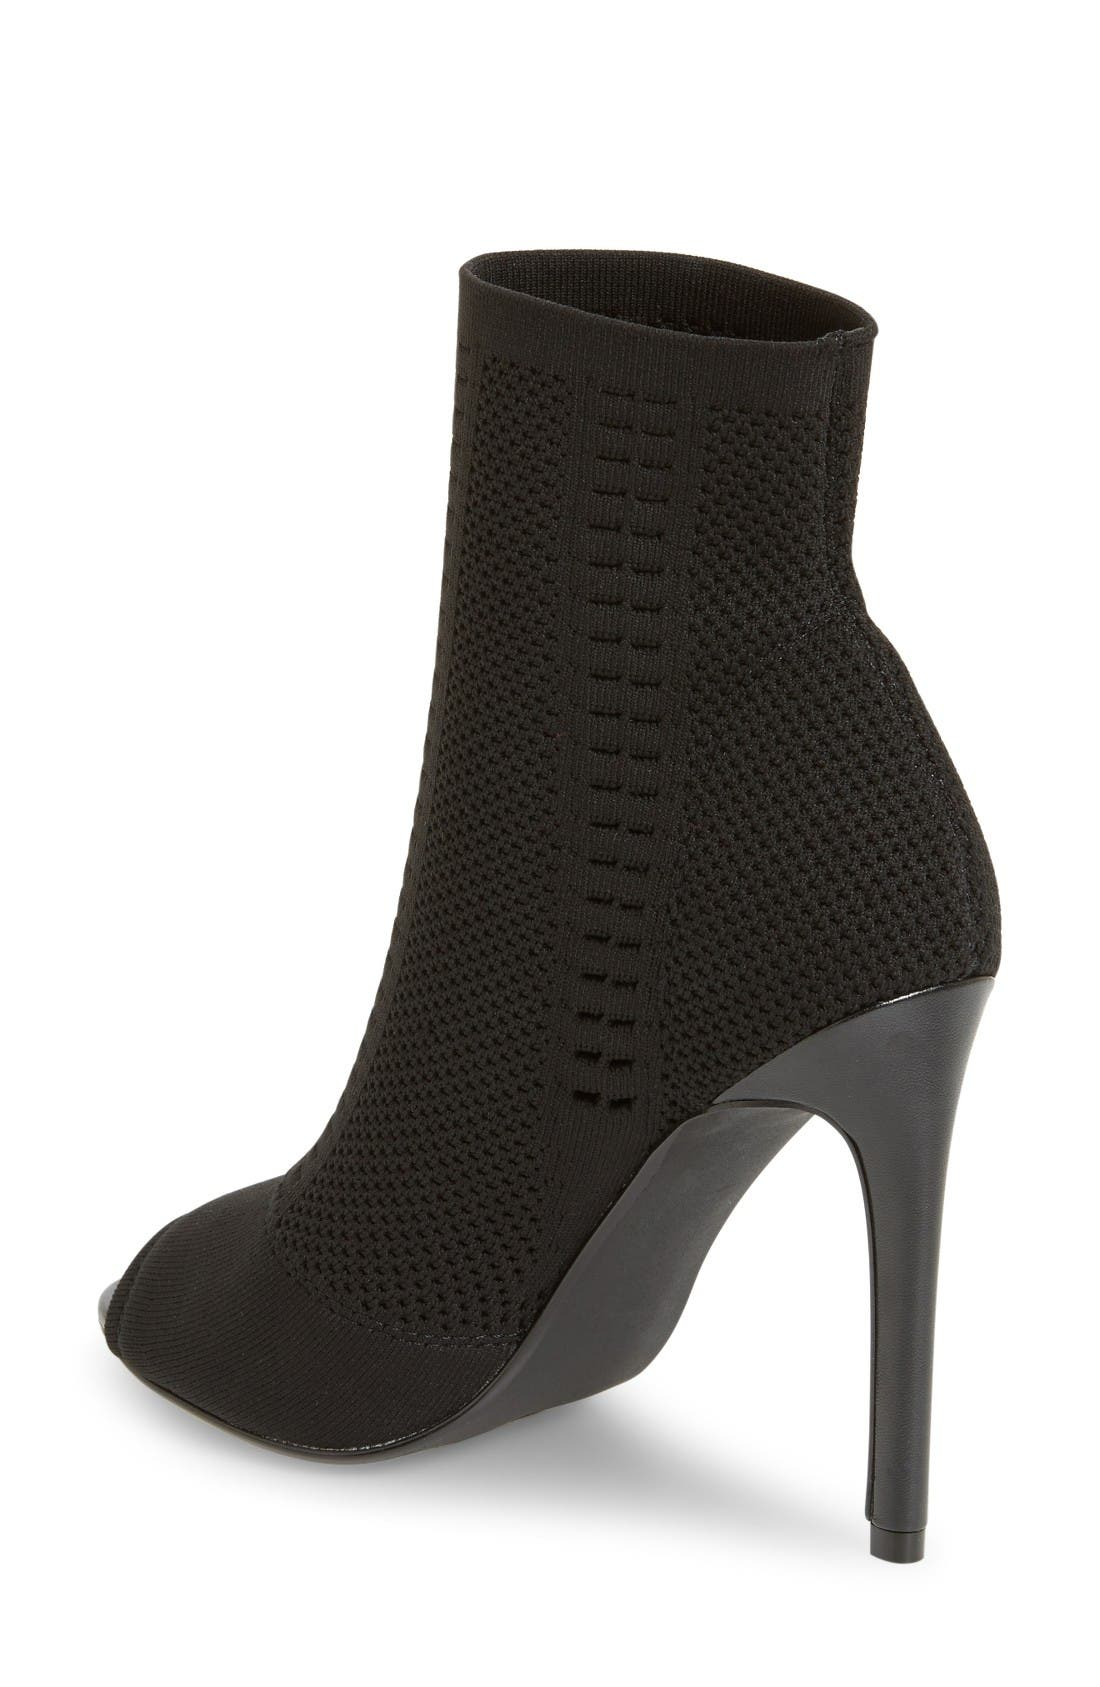 Candid Knit Bootie,                             Alternate thumbnail 2, color,                             Black Fabric